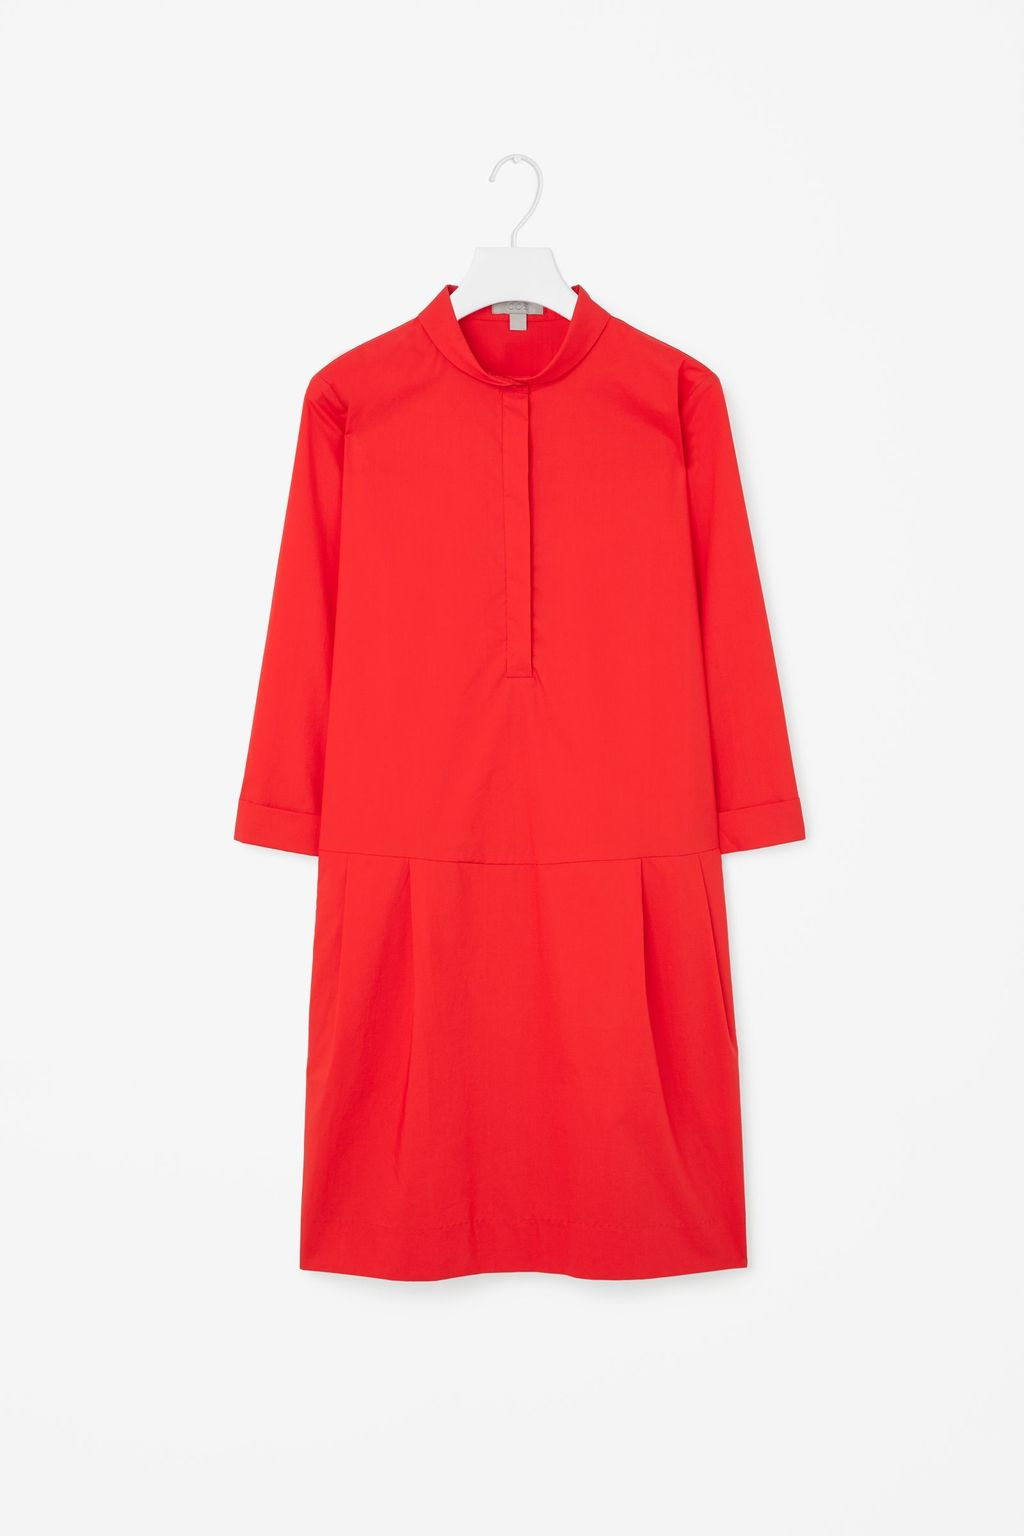 Cotton Shirt Dress - style: shift; length: mid thigh; pattern: plain; predominant colour: true red; occasions: casual, evening, creative work; fit: straight cut; neckline: collarstand; fibres: cotton - 100%; sleeve length: long sleeve; sleeve style: standard; texture group: cotton feel fabrics; pattern type: fabric; season: s/s 2015